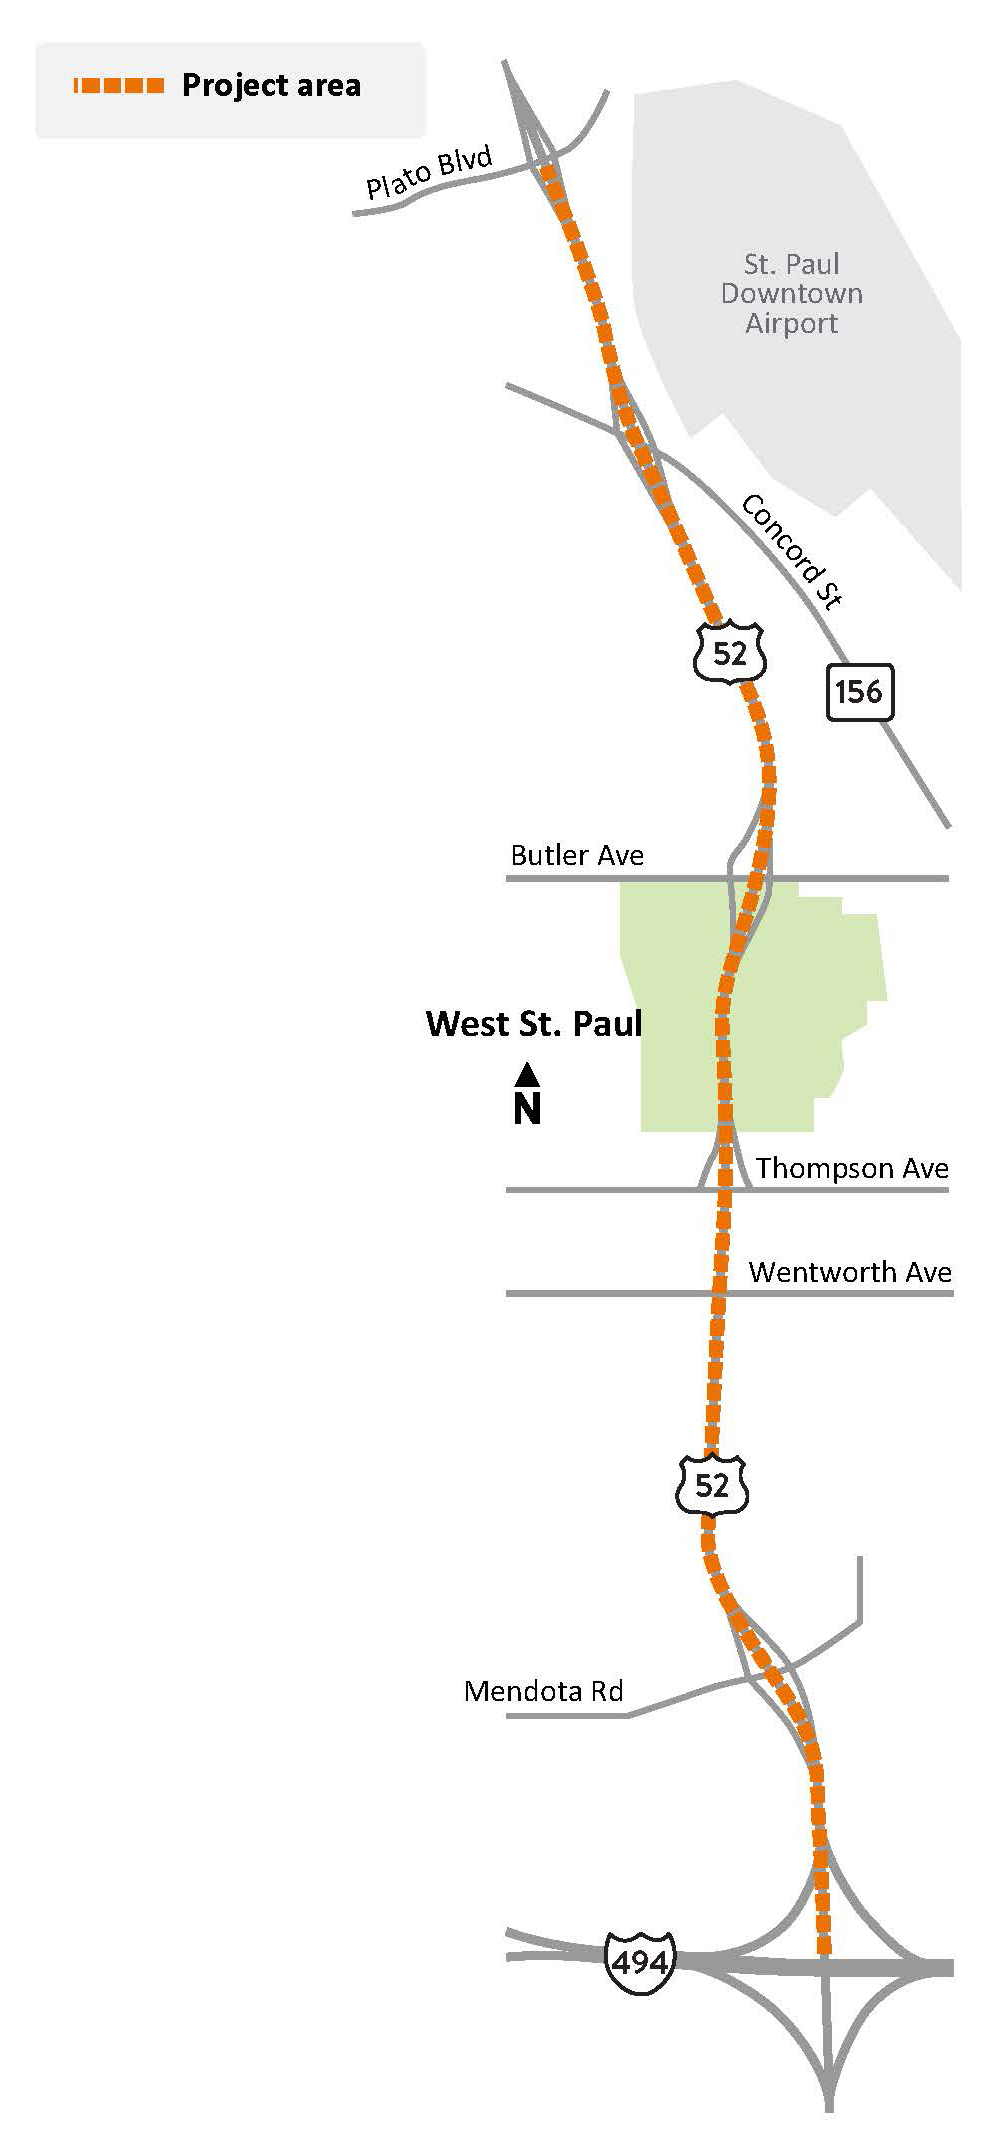 Hwy 52 Inver Grove Heights to St. Paul project area map